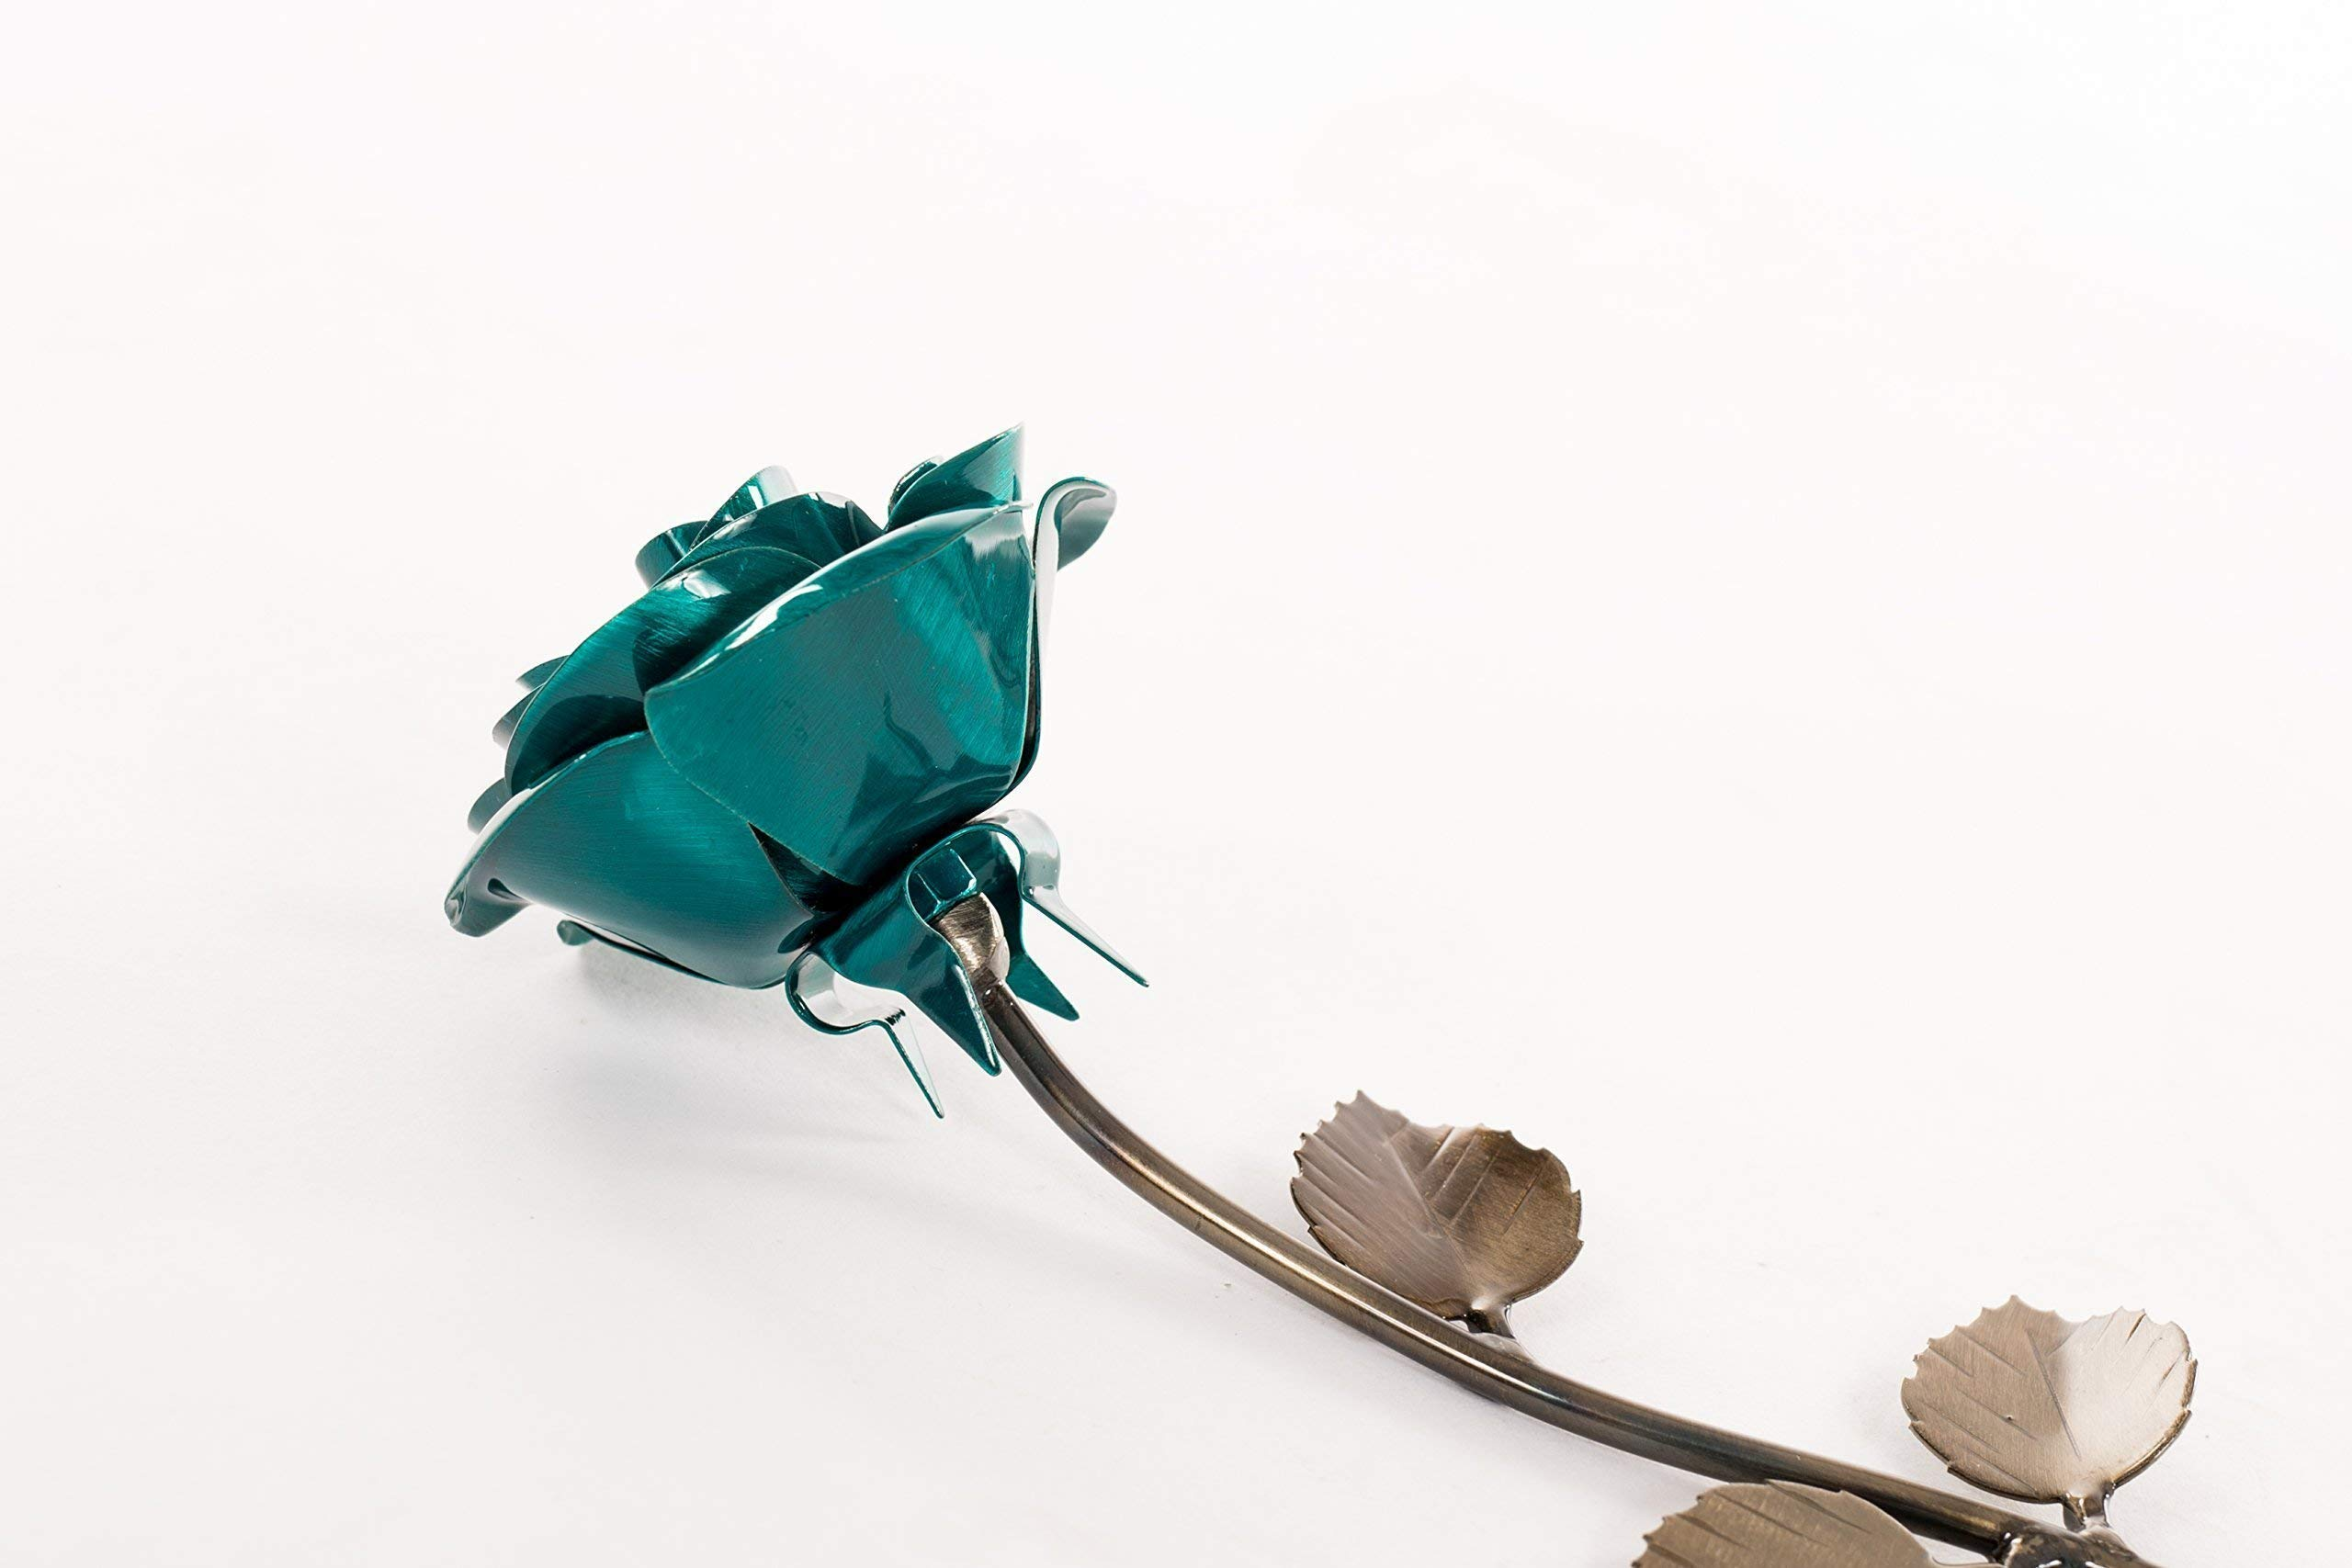 Personalized Gift Hand-Forged Wrought Iron Emerald Green Metal Rose – Valentine's Day Gift